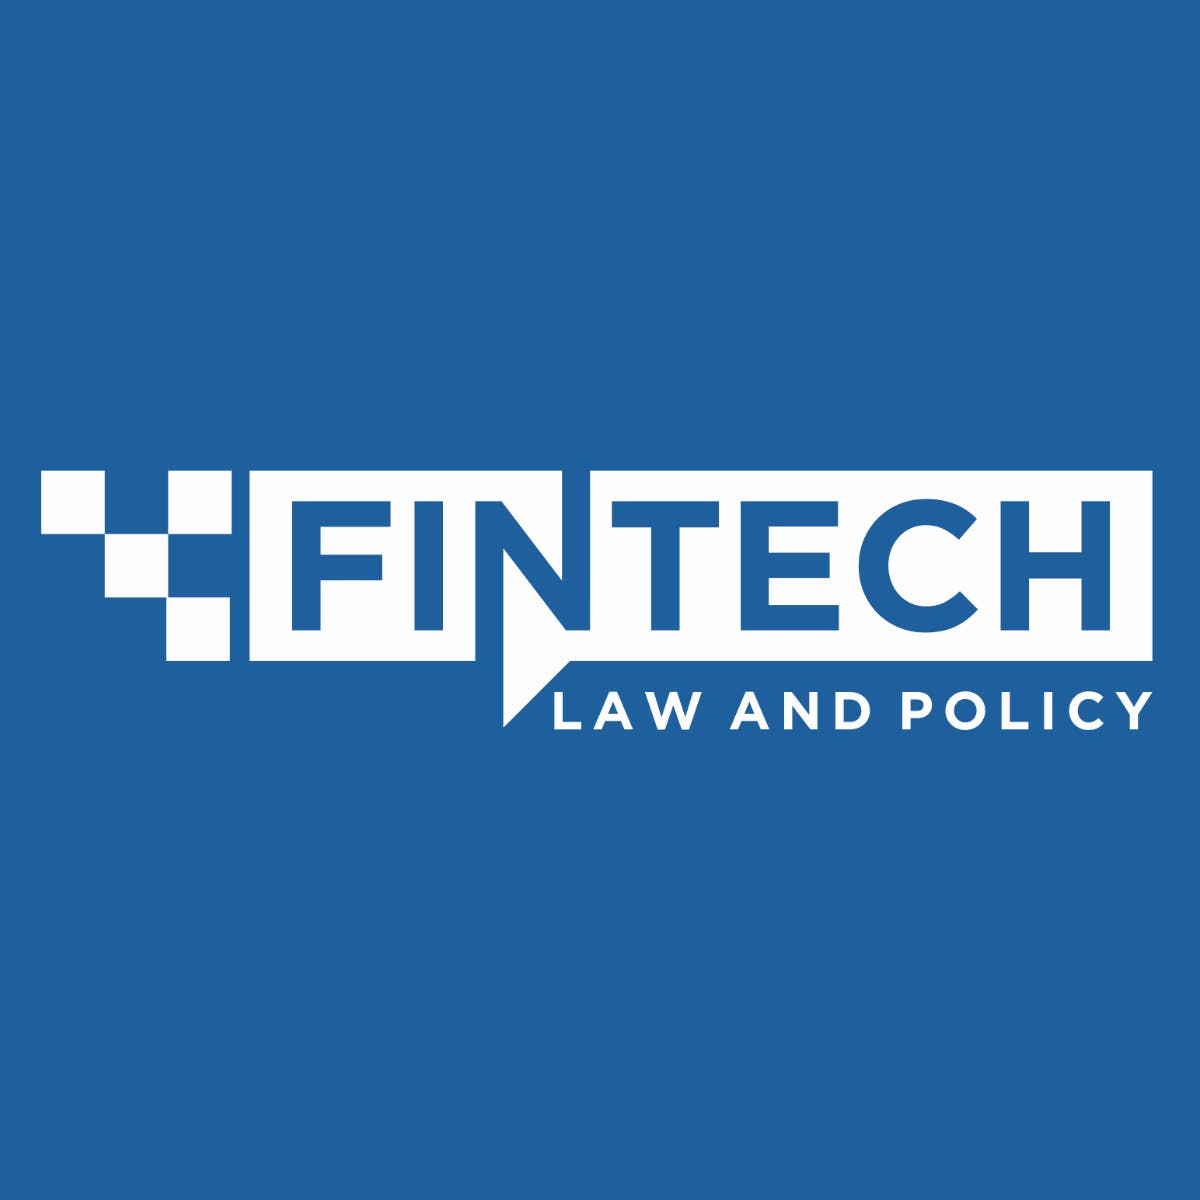 FinTech Law and Policy